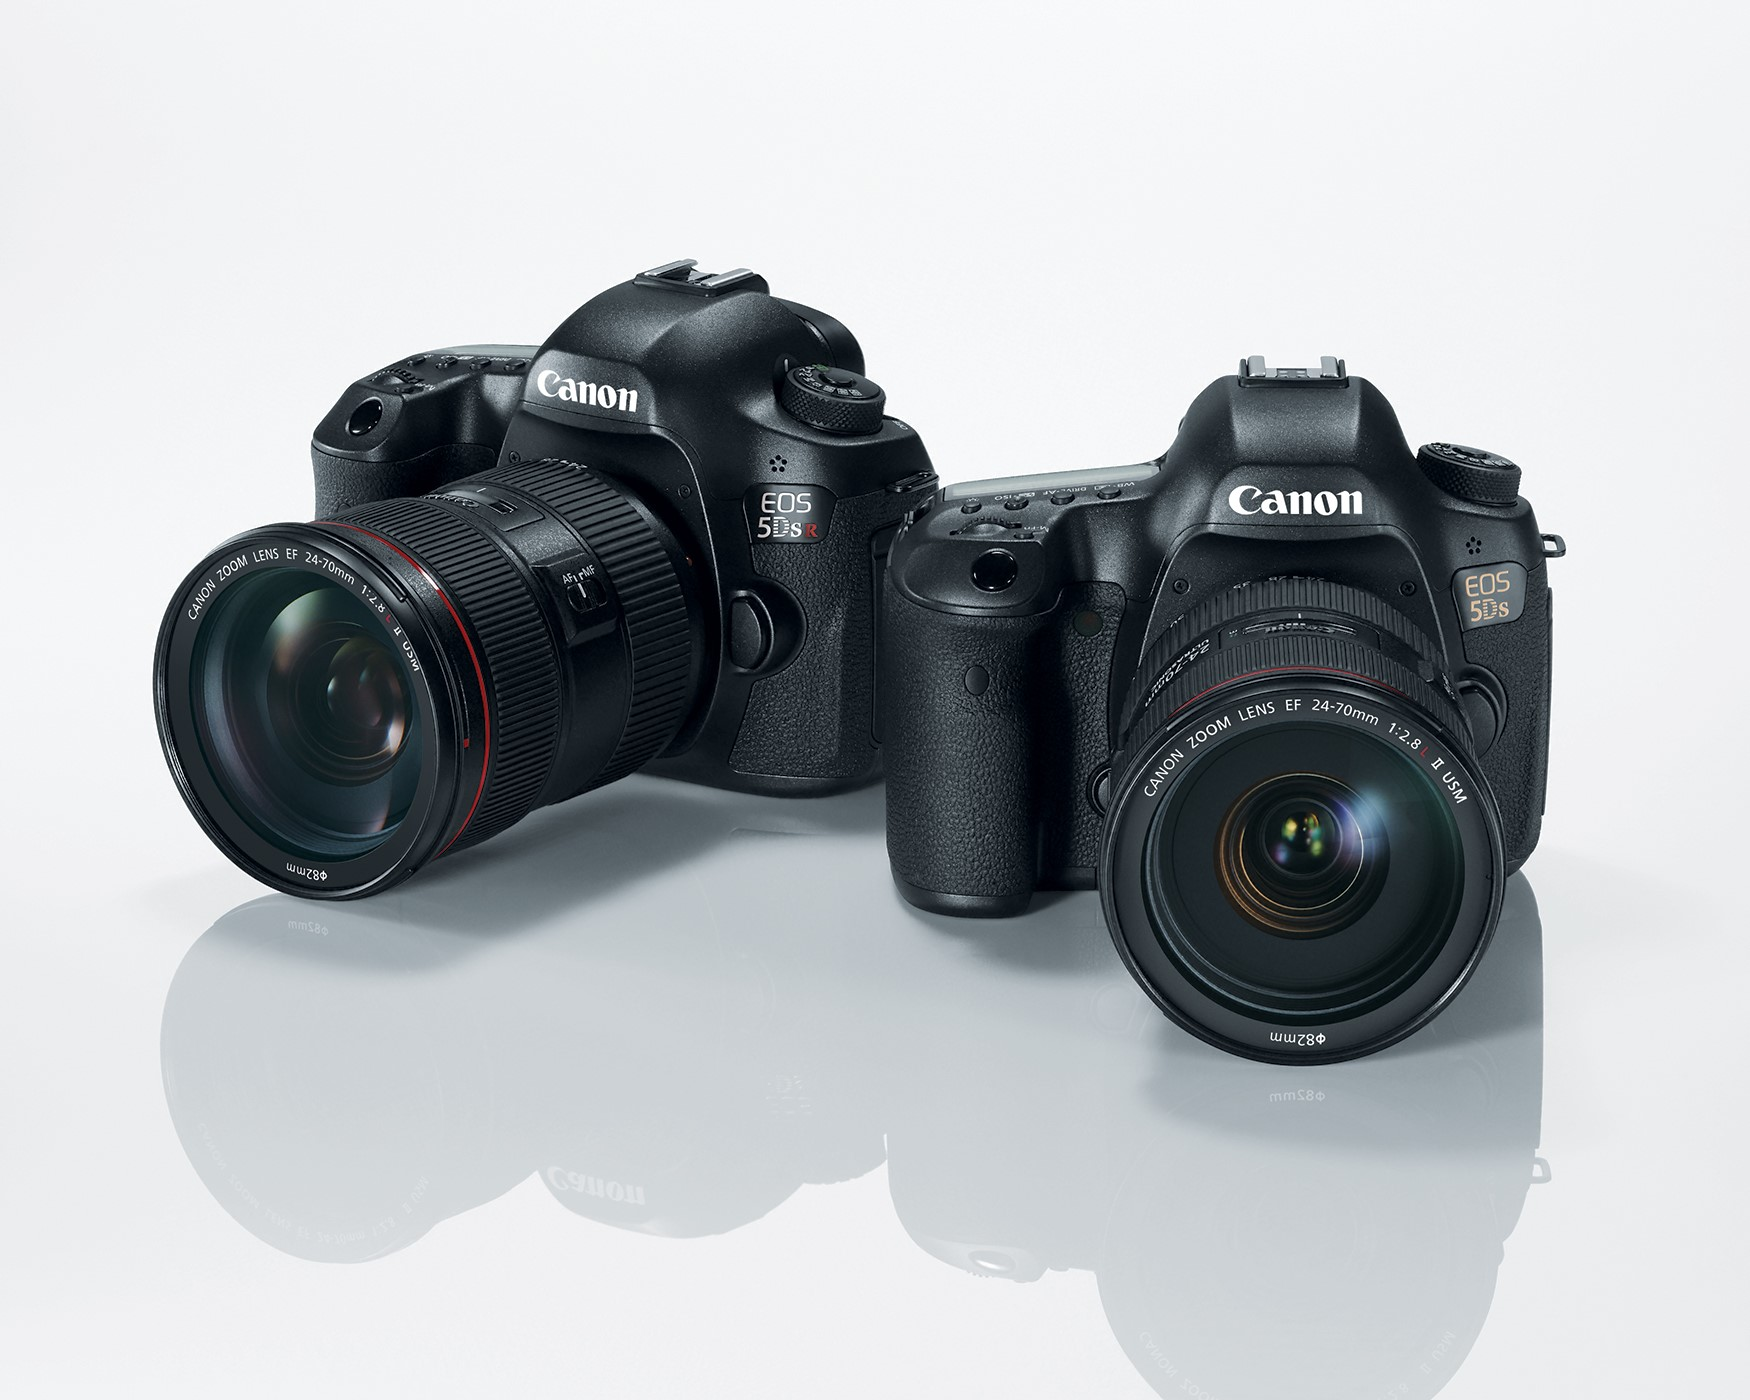 Say Hello to the 50MP Canon 5DS and 5DS R: The World's Highest Resolution Full-Frame DSLRs